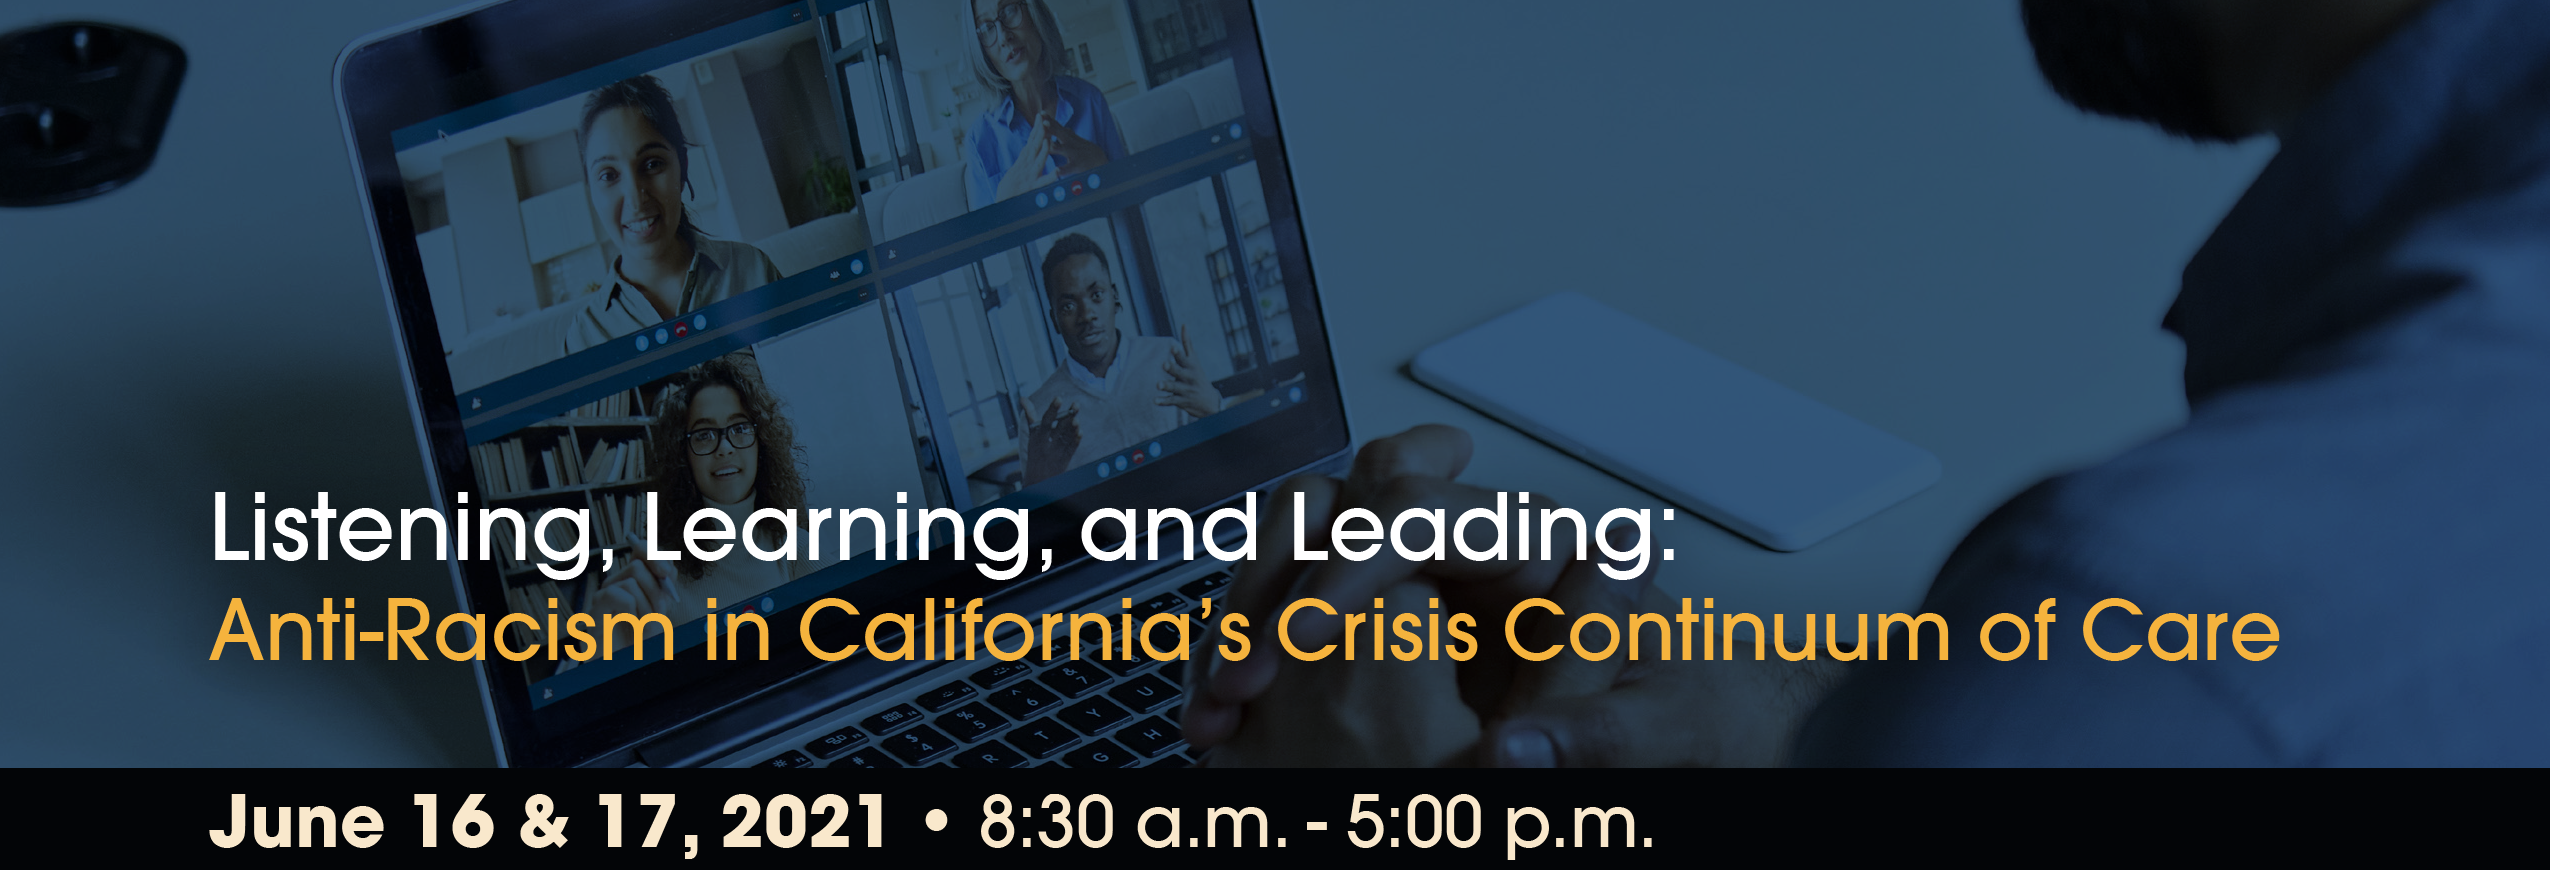 June 16 & 17, 2021 Virtual Conference - Listening, Learning, and Leading: Anti-Racism in California's Crisis Continuum of Care